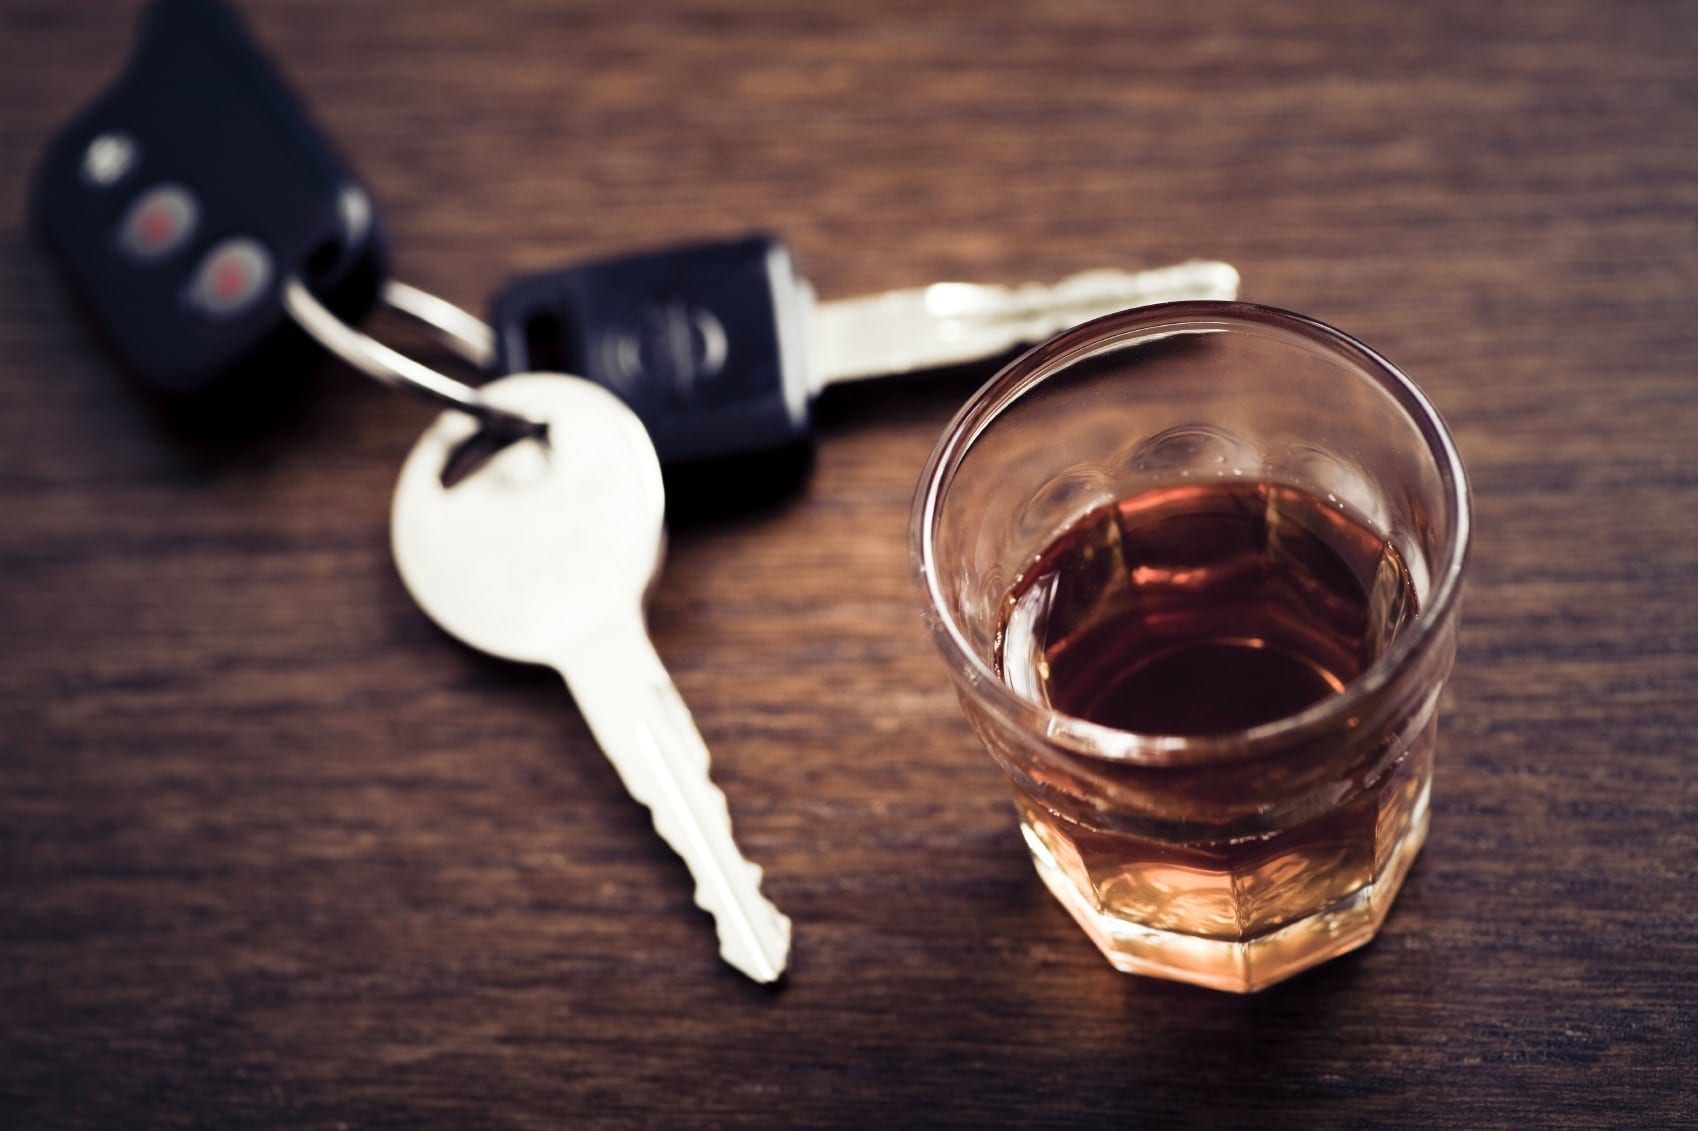 Car Keys Laying Next To A Glass Of Alcohol Stock Photo